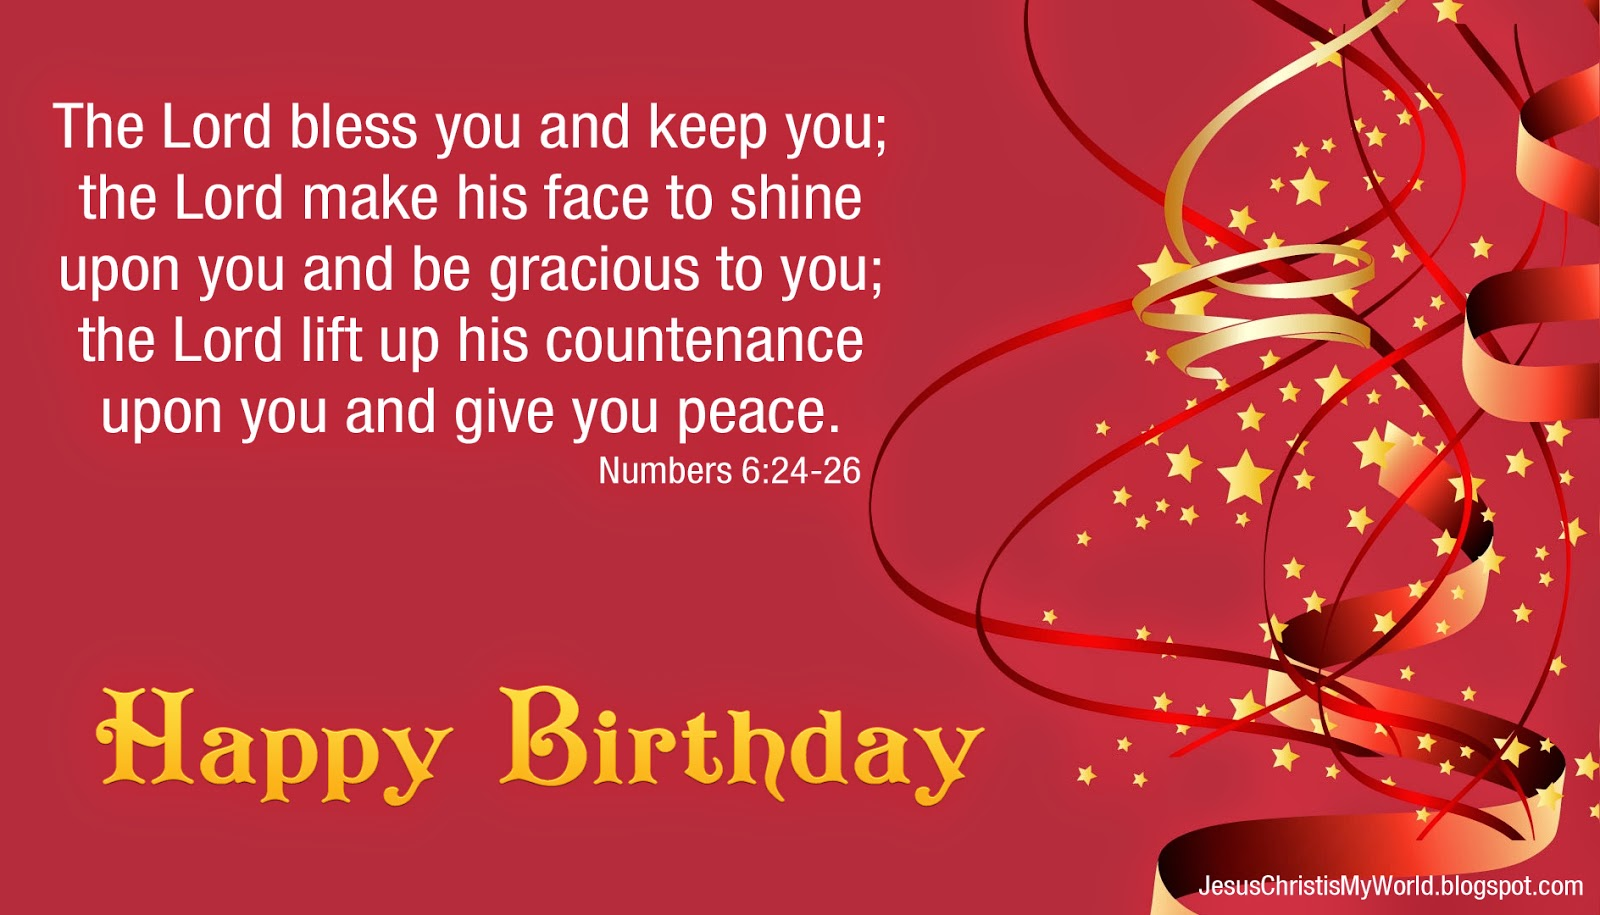 good bible verse for birthday wish ; Birthday%252BBible%252BVerse%252Bwith%252BImages%252B01